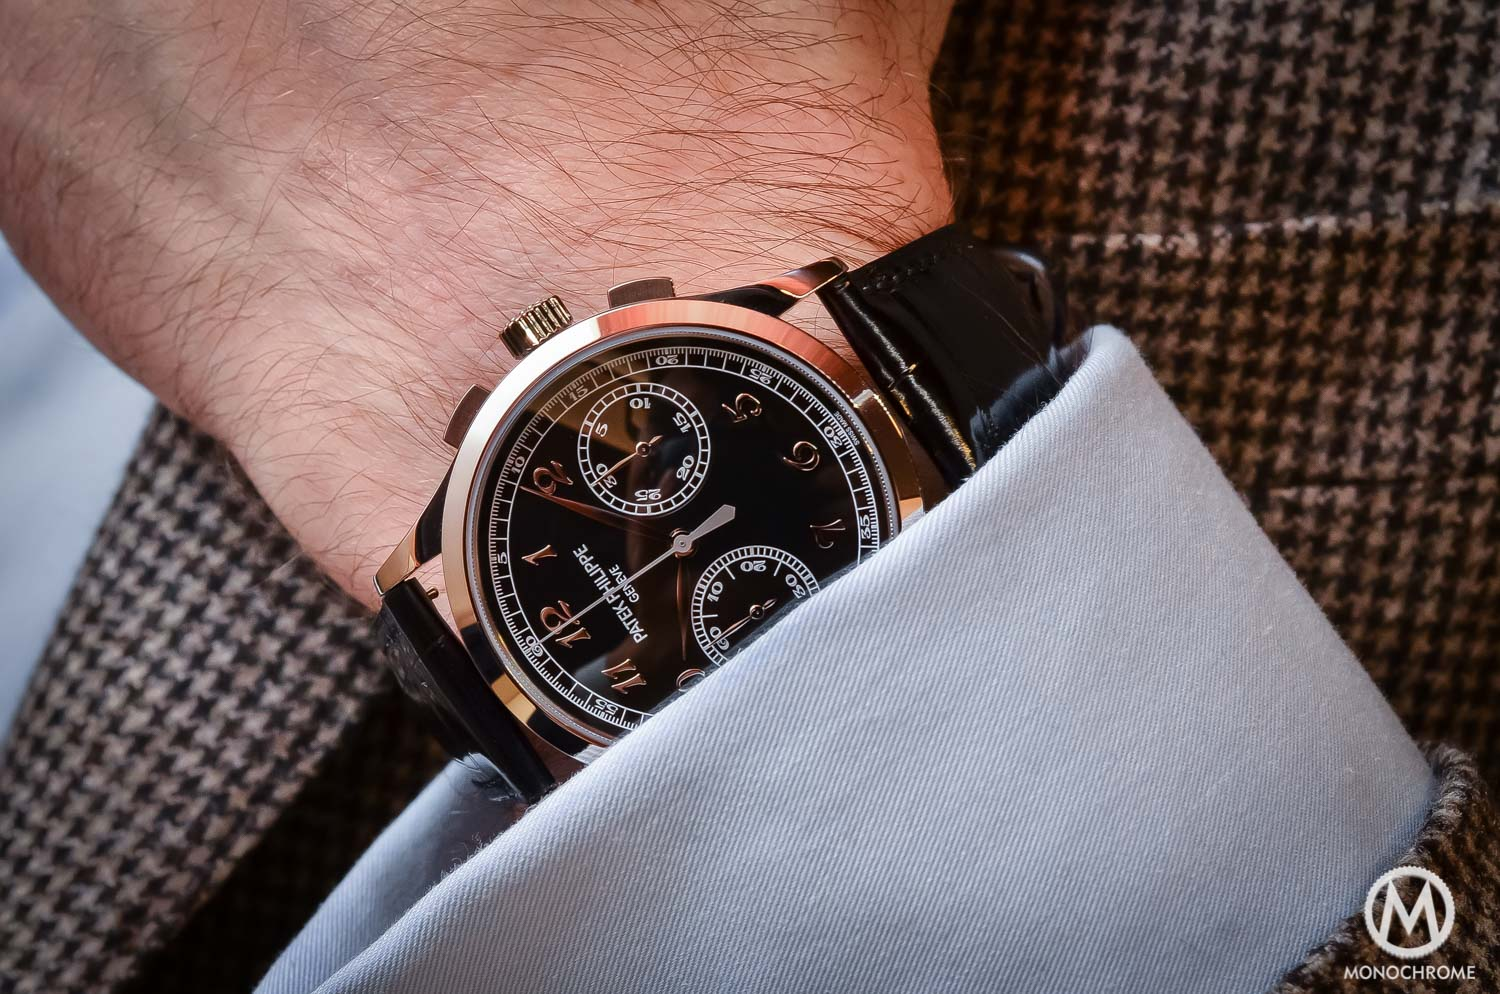 Why the Patek Philippe 5170G Chronograph is such a cool watch ... 3a06613125